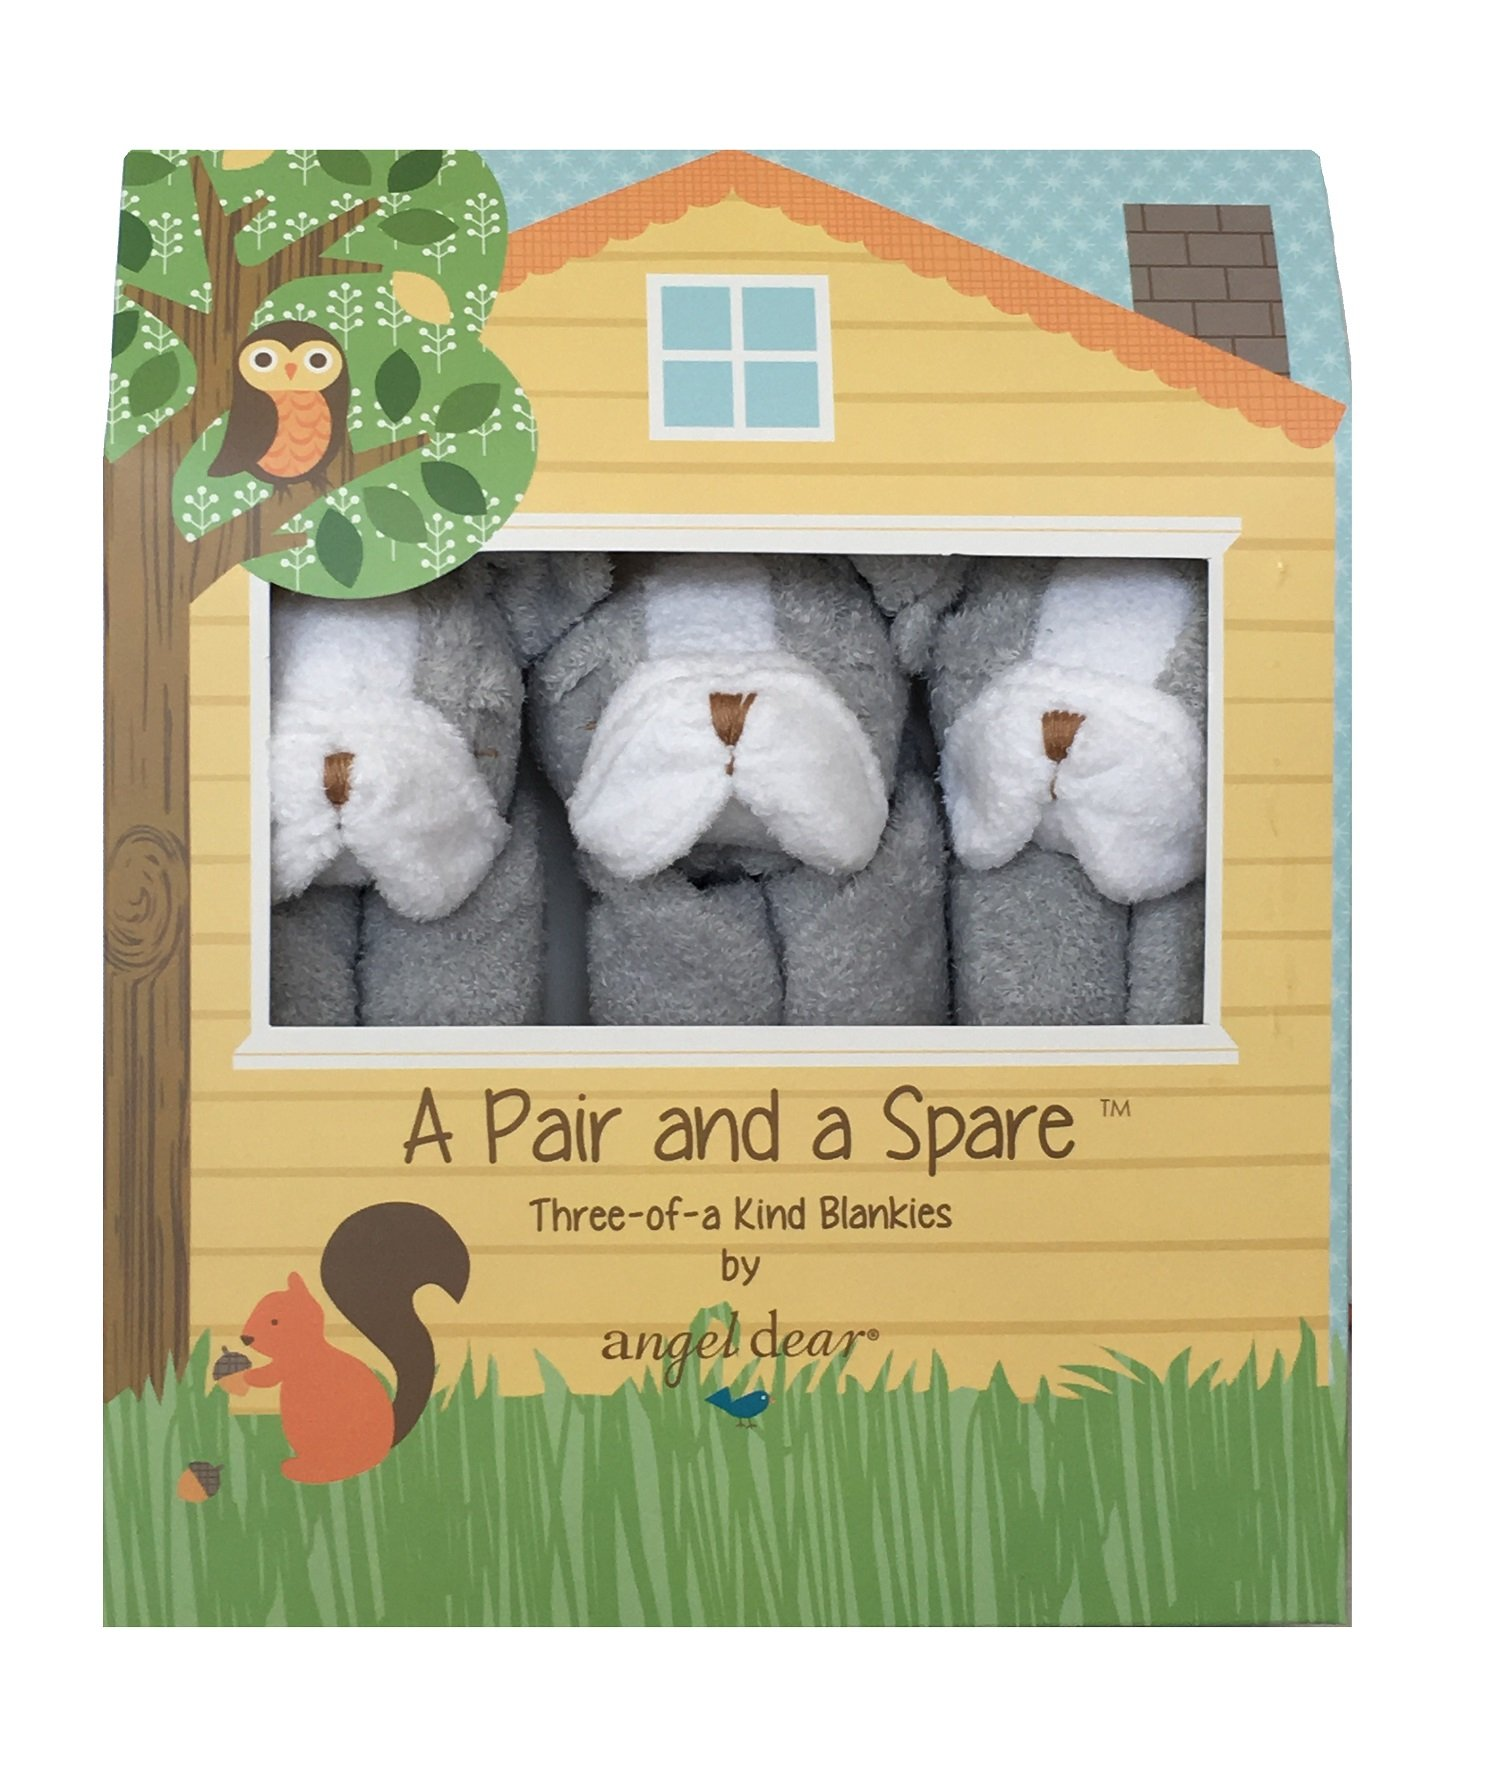 Angel Dear a Pair and a Spare 3 Pcs Blankets Gift Box, Grey BullDog